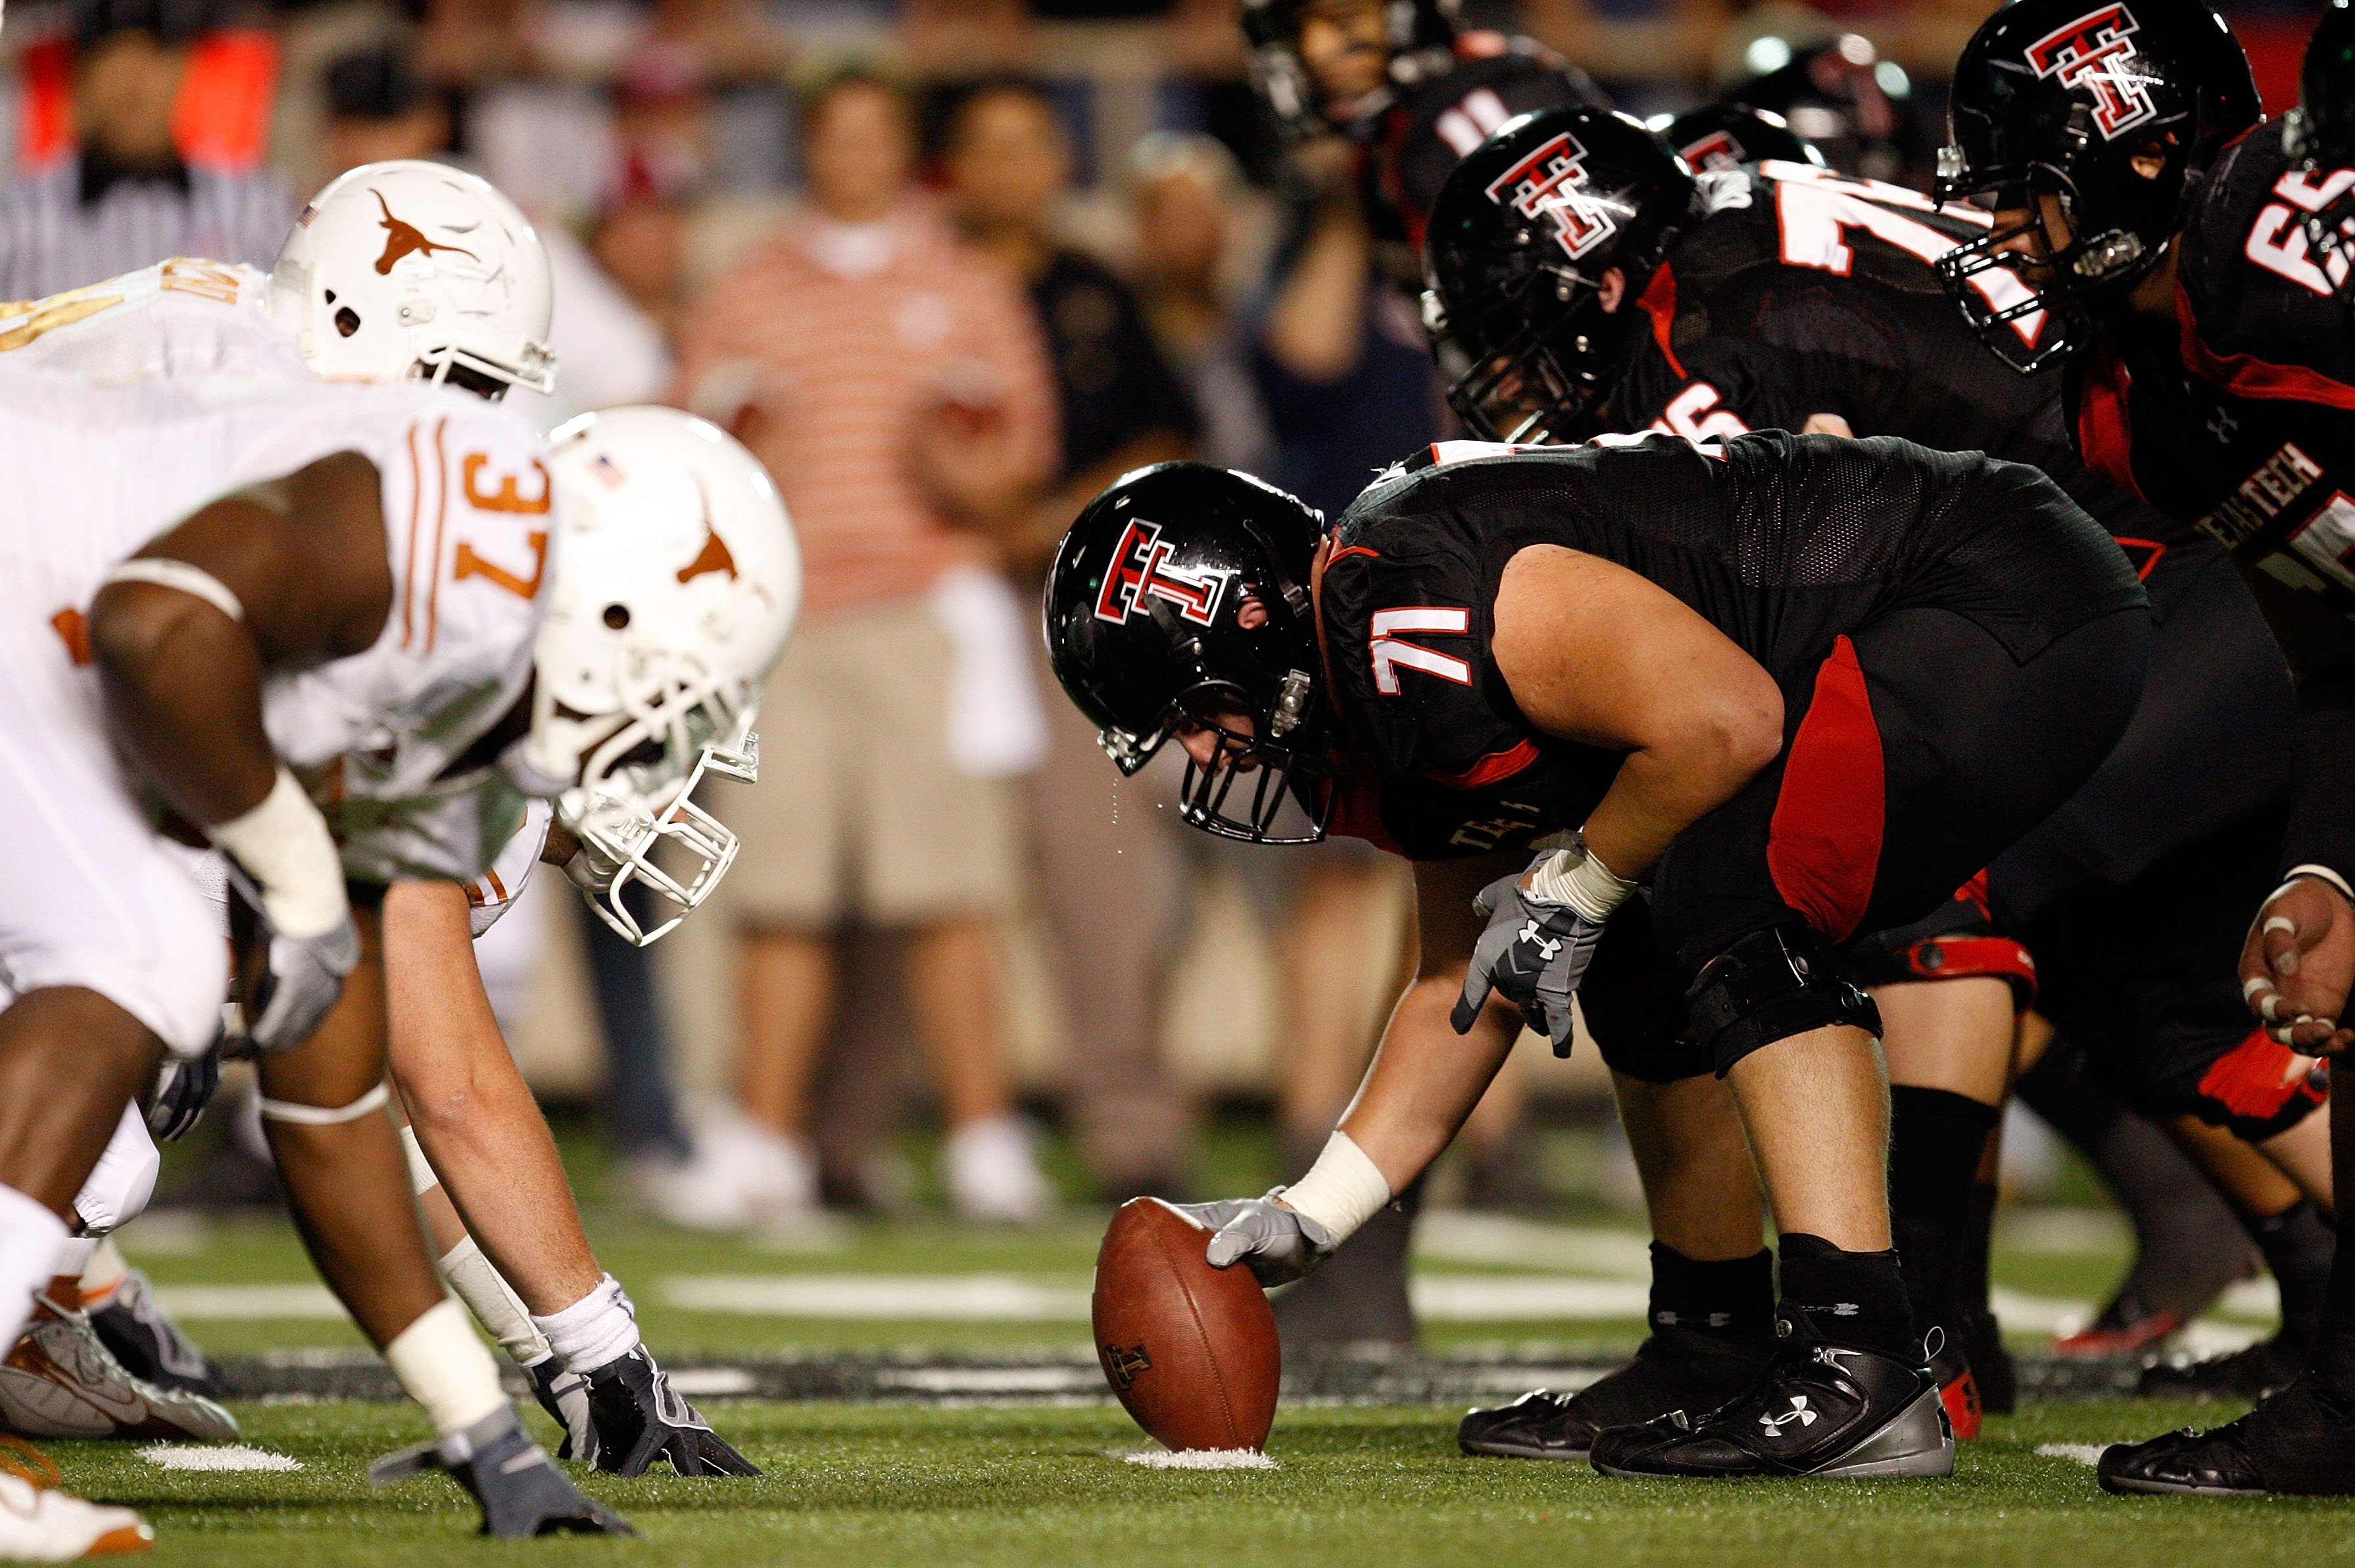 Texas Tech Football 10 Things You Need To Know About Texas Tech Vs Texas Bleacher Report Latest News Videos And Highlights